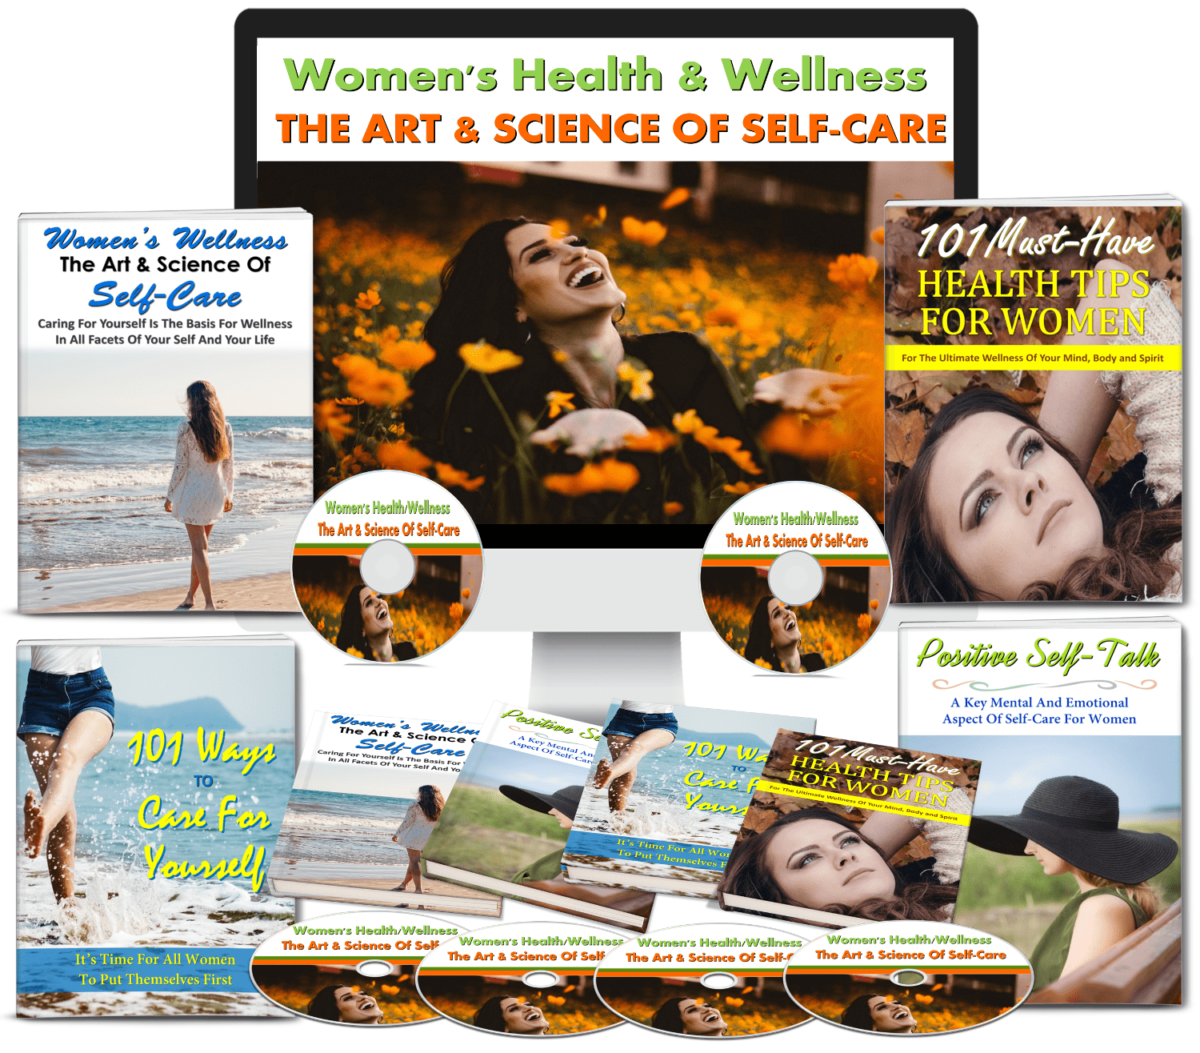 No one takes care of the care-giver, even the care-giver herself.  This health and wellness PLR will train your readers in the art and science of self-care.